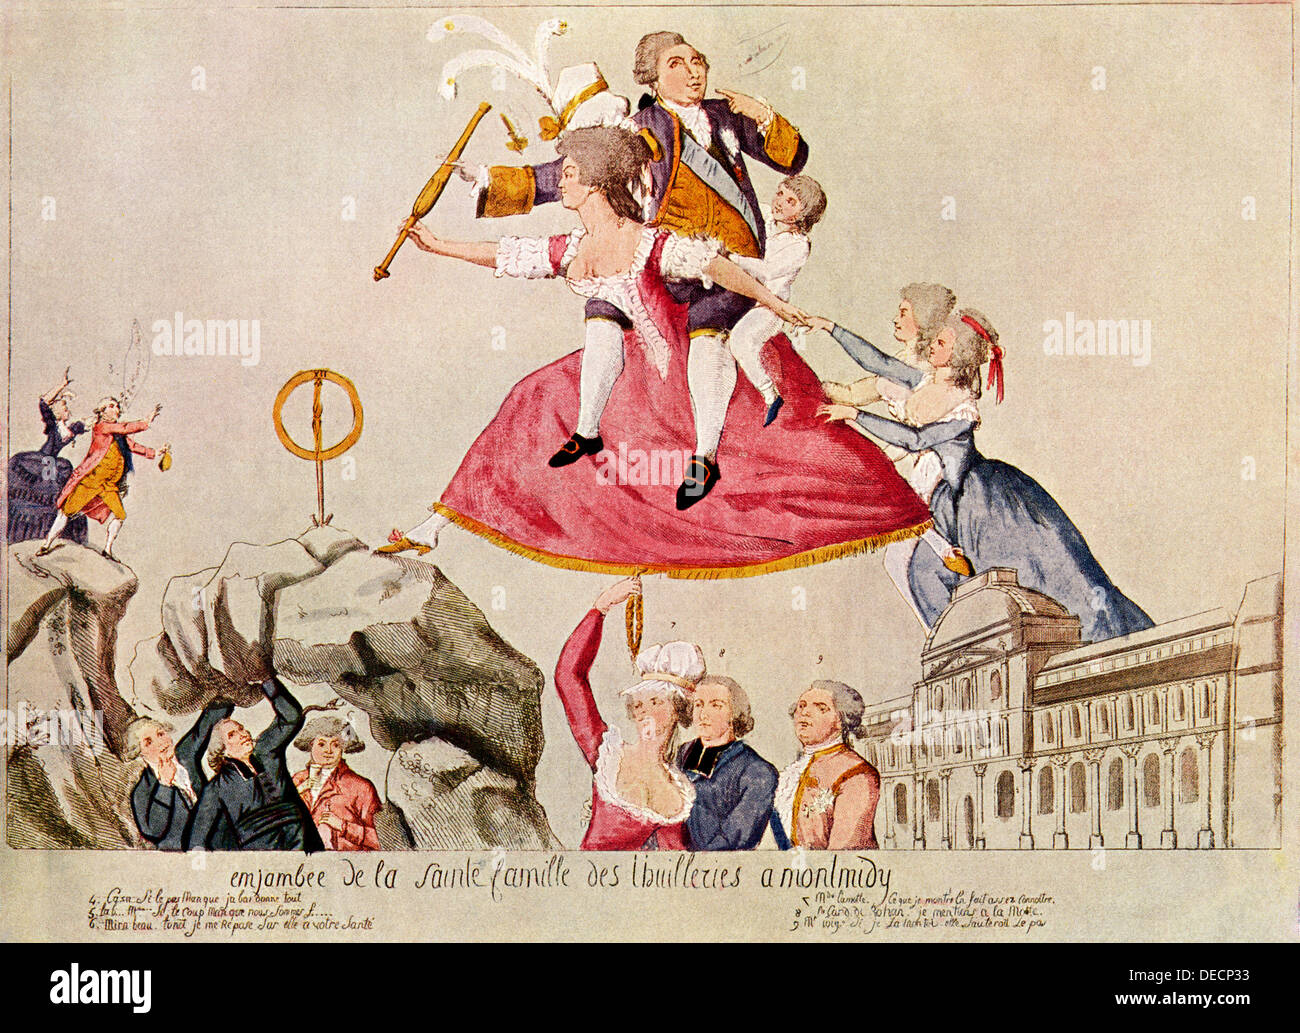 Caricature of French King Louis XVI and his son riding on the back of Marie Antoinette, 1792. Color lithograph - Stock Image